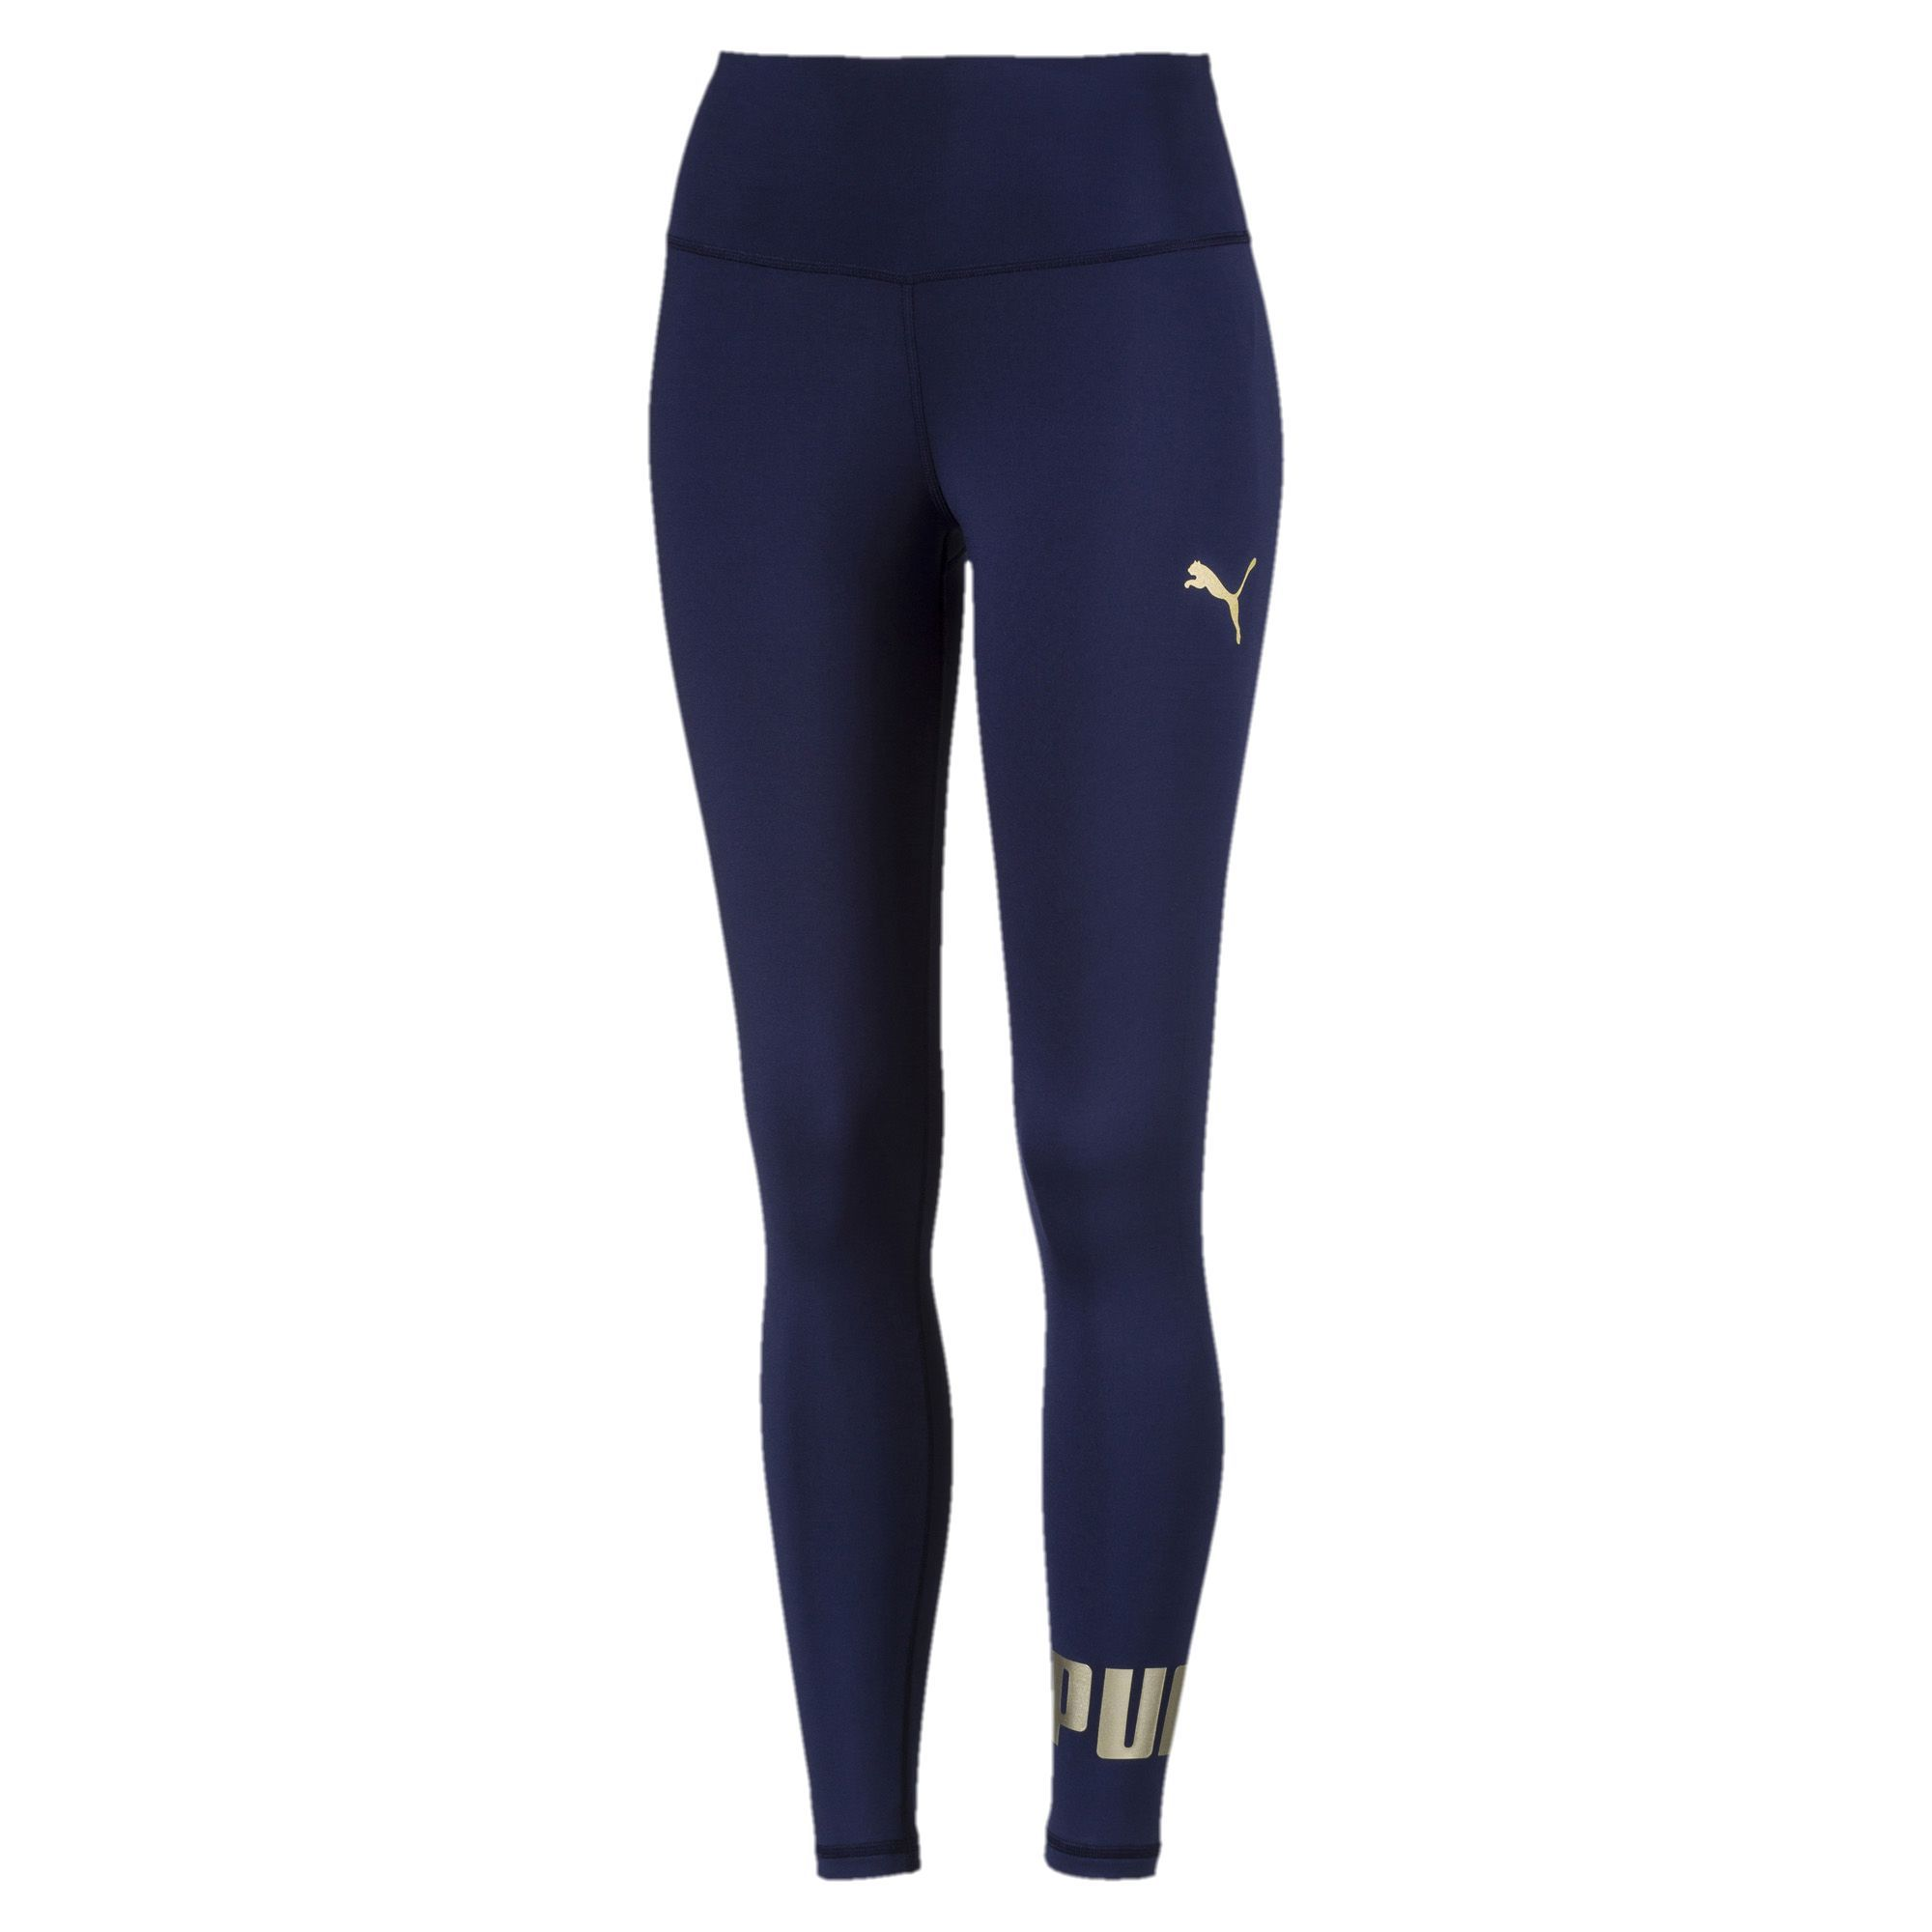 bde719f4322f Puma Women s Active Navy Leggings – INSPORT